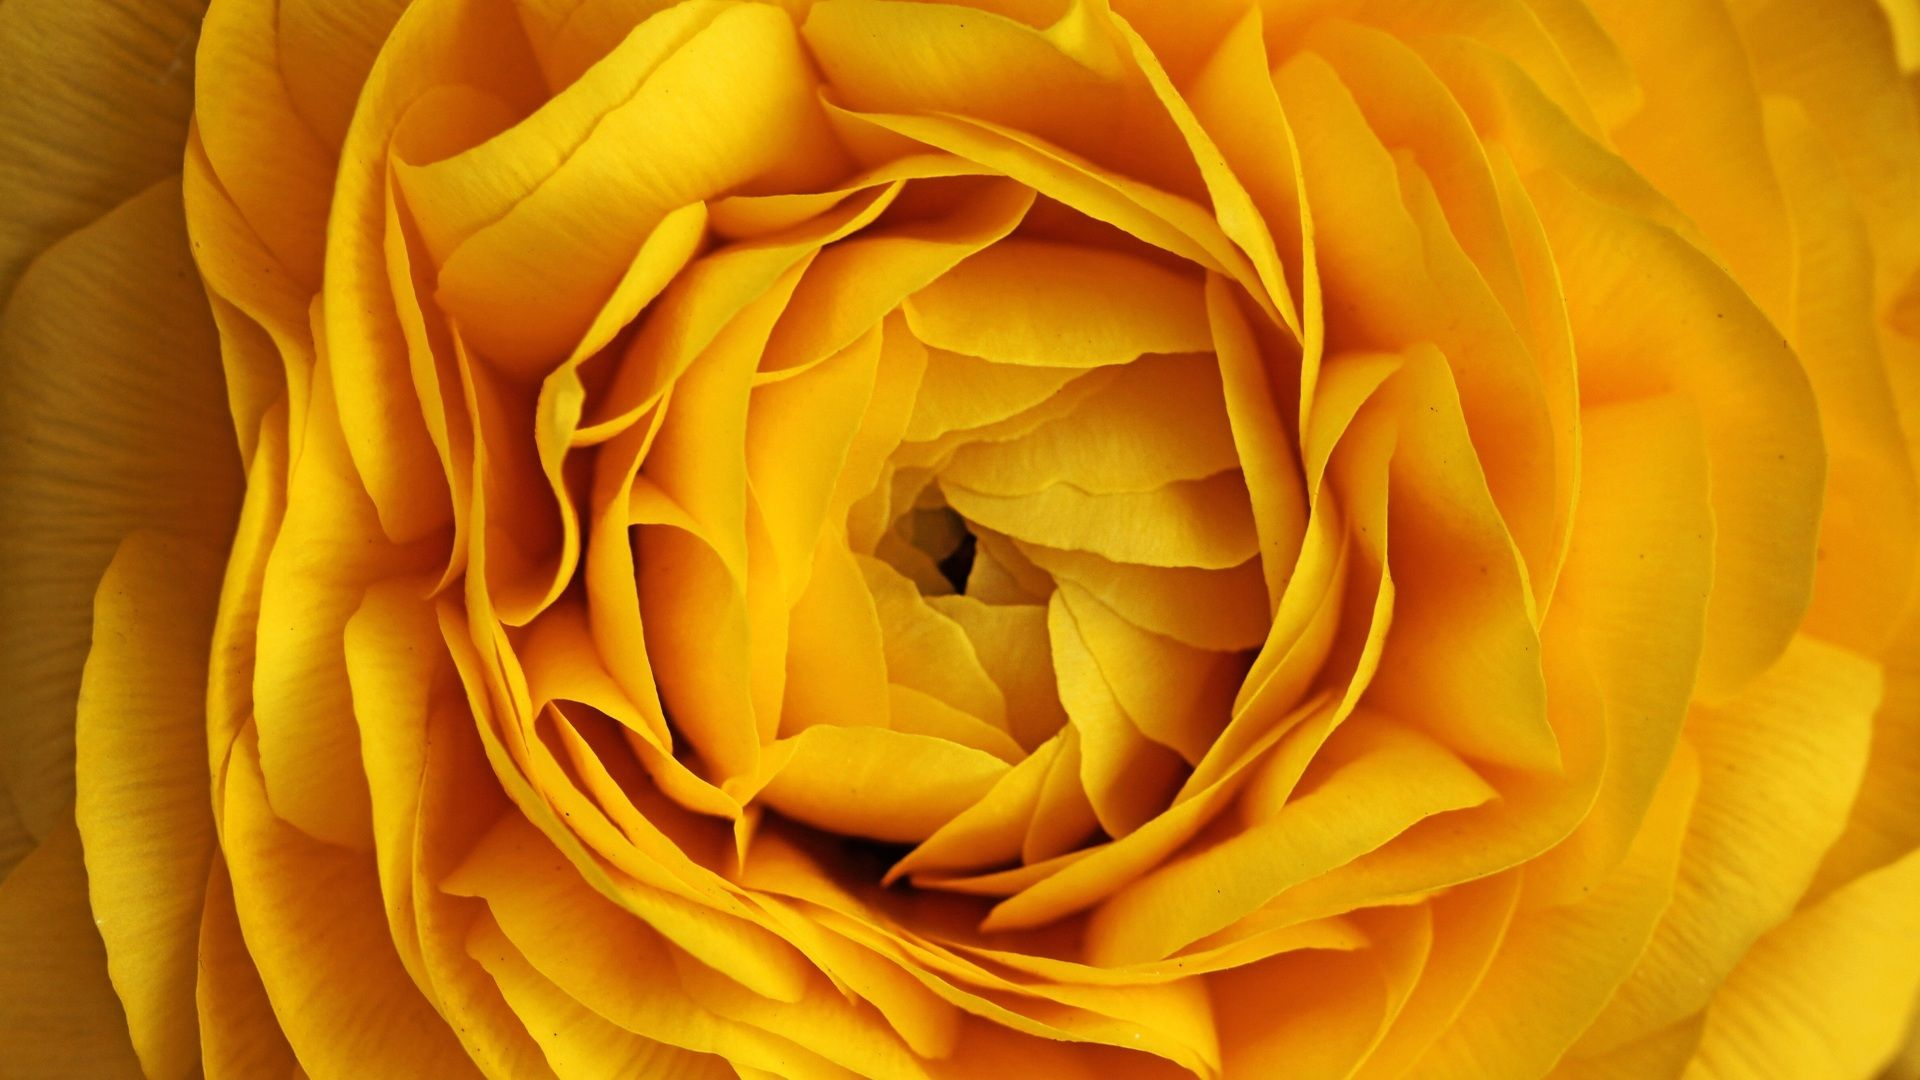 Yellow rose backgrounds free download